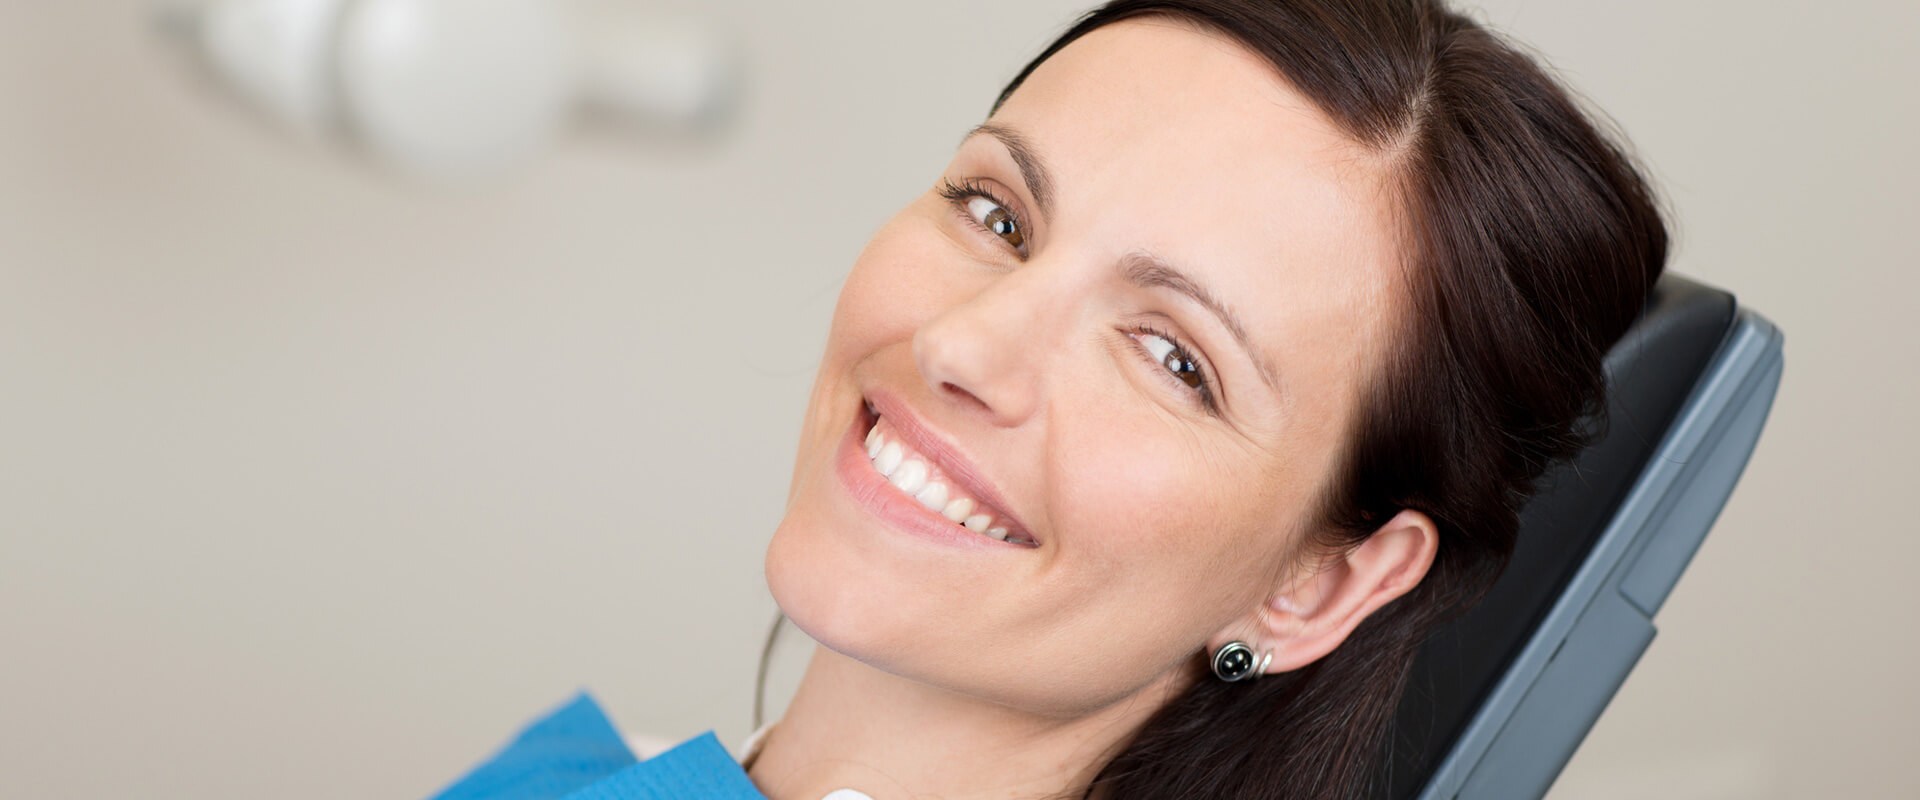 Smiling woman seated ready for emergency care